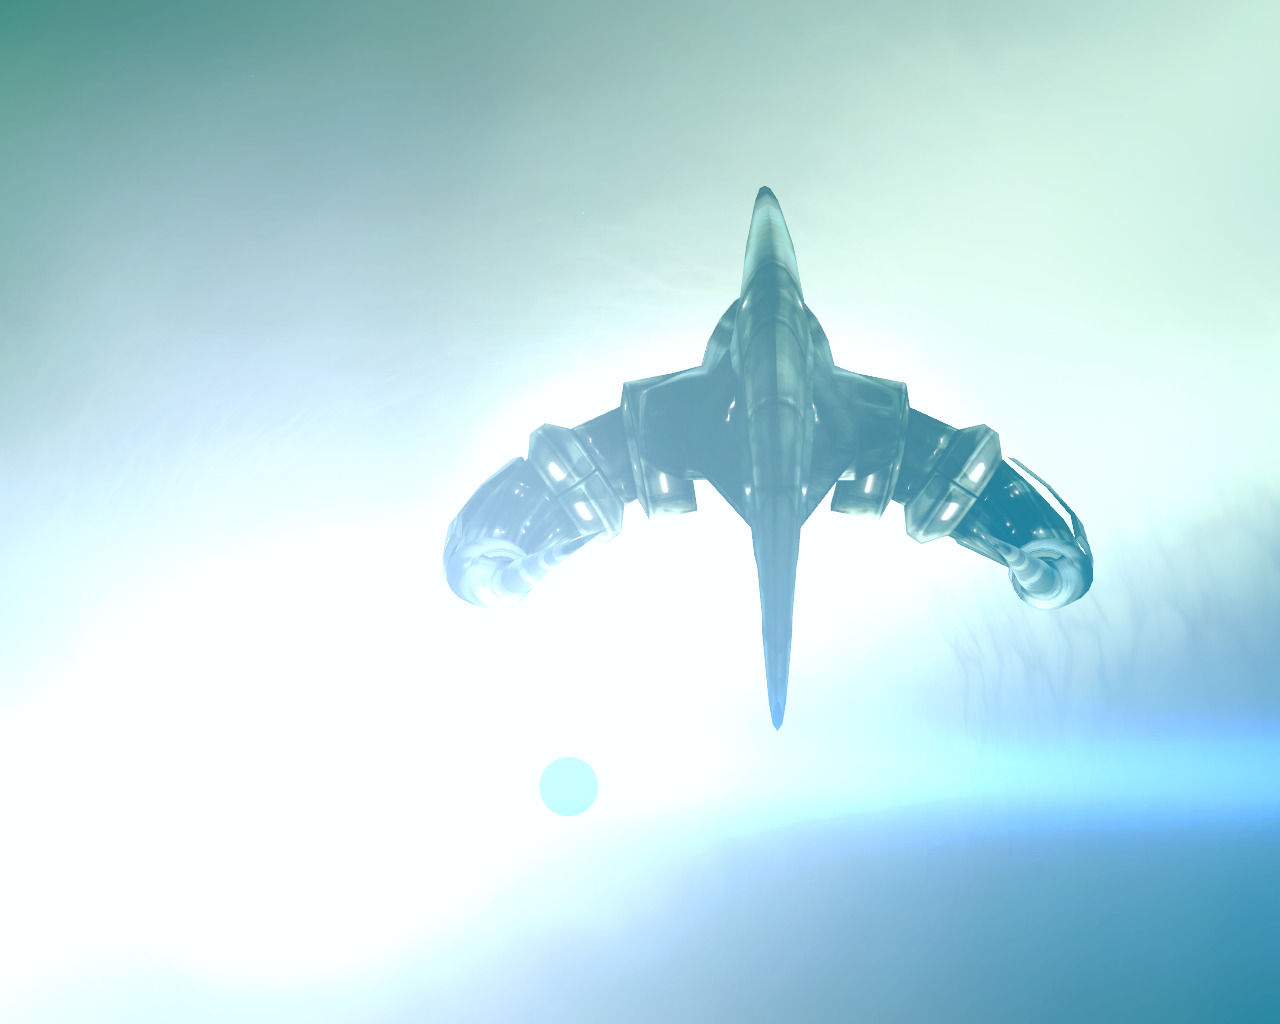 spaceships vehicles eve online HD Wallpaper